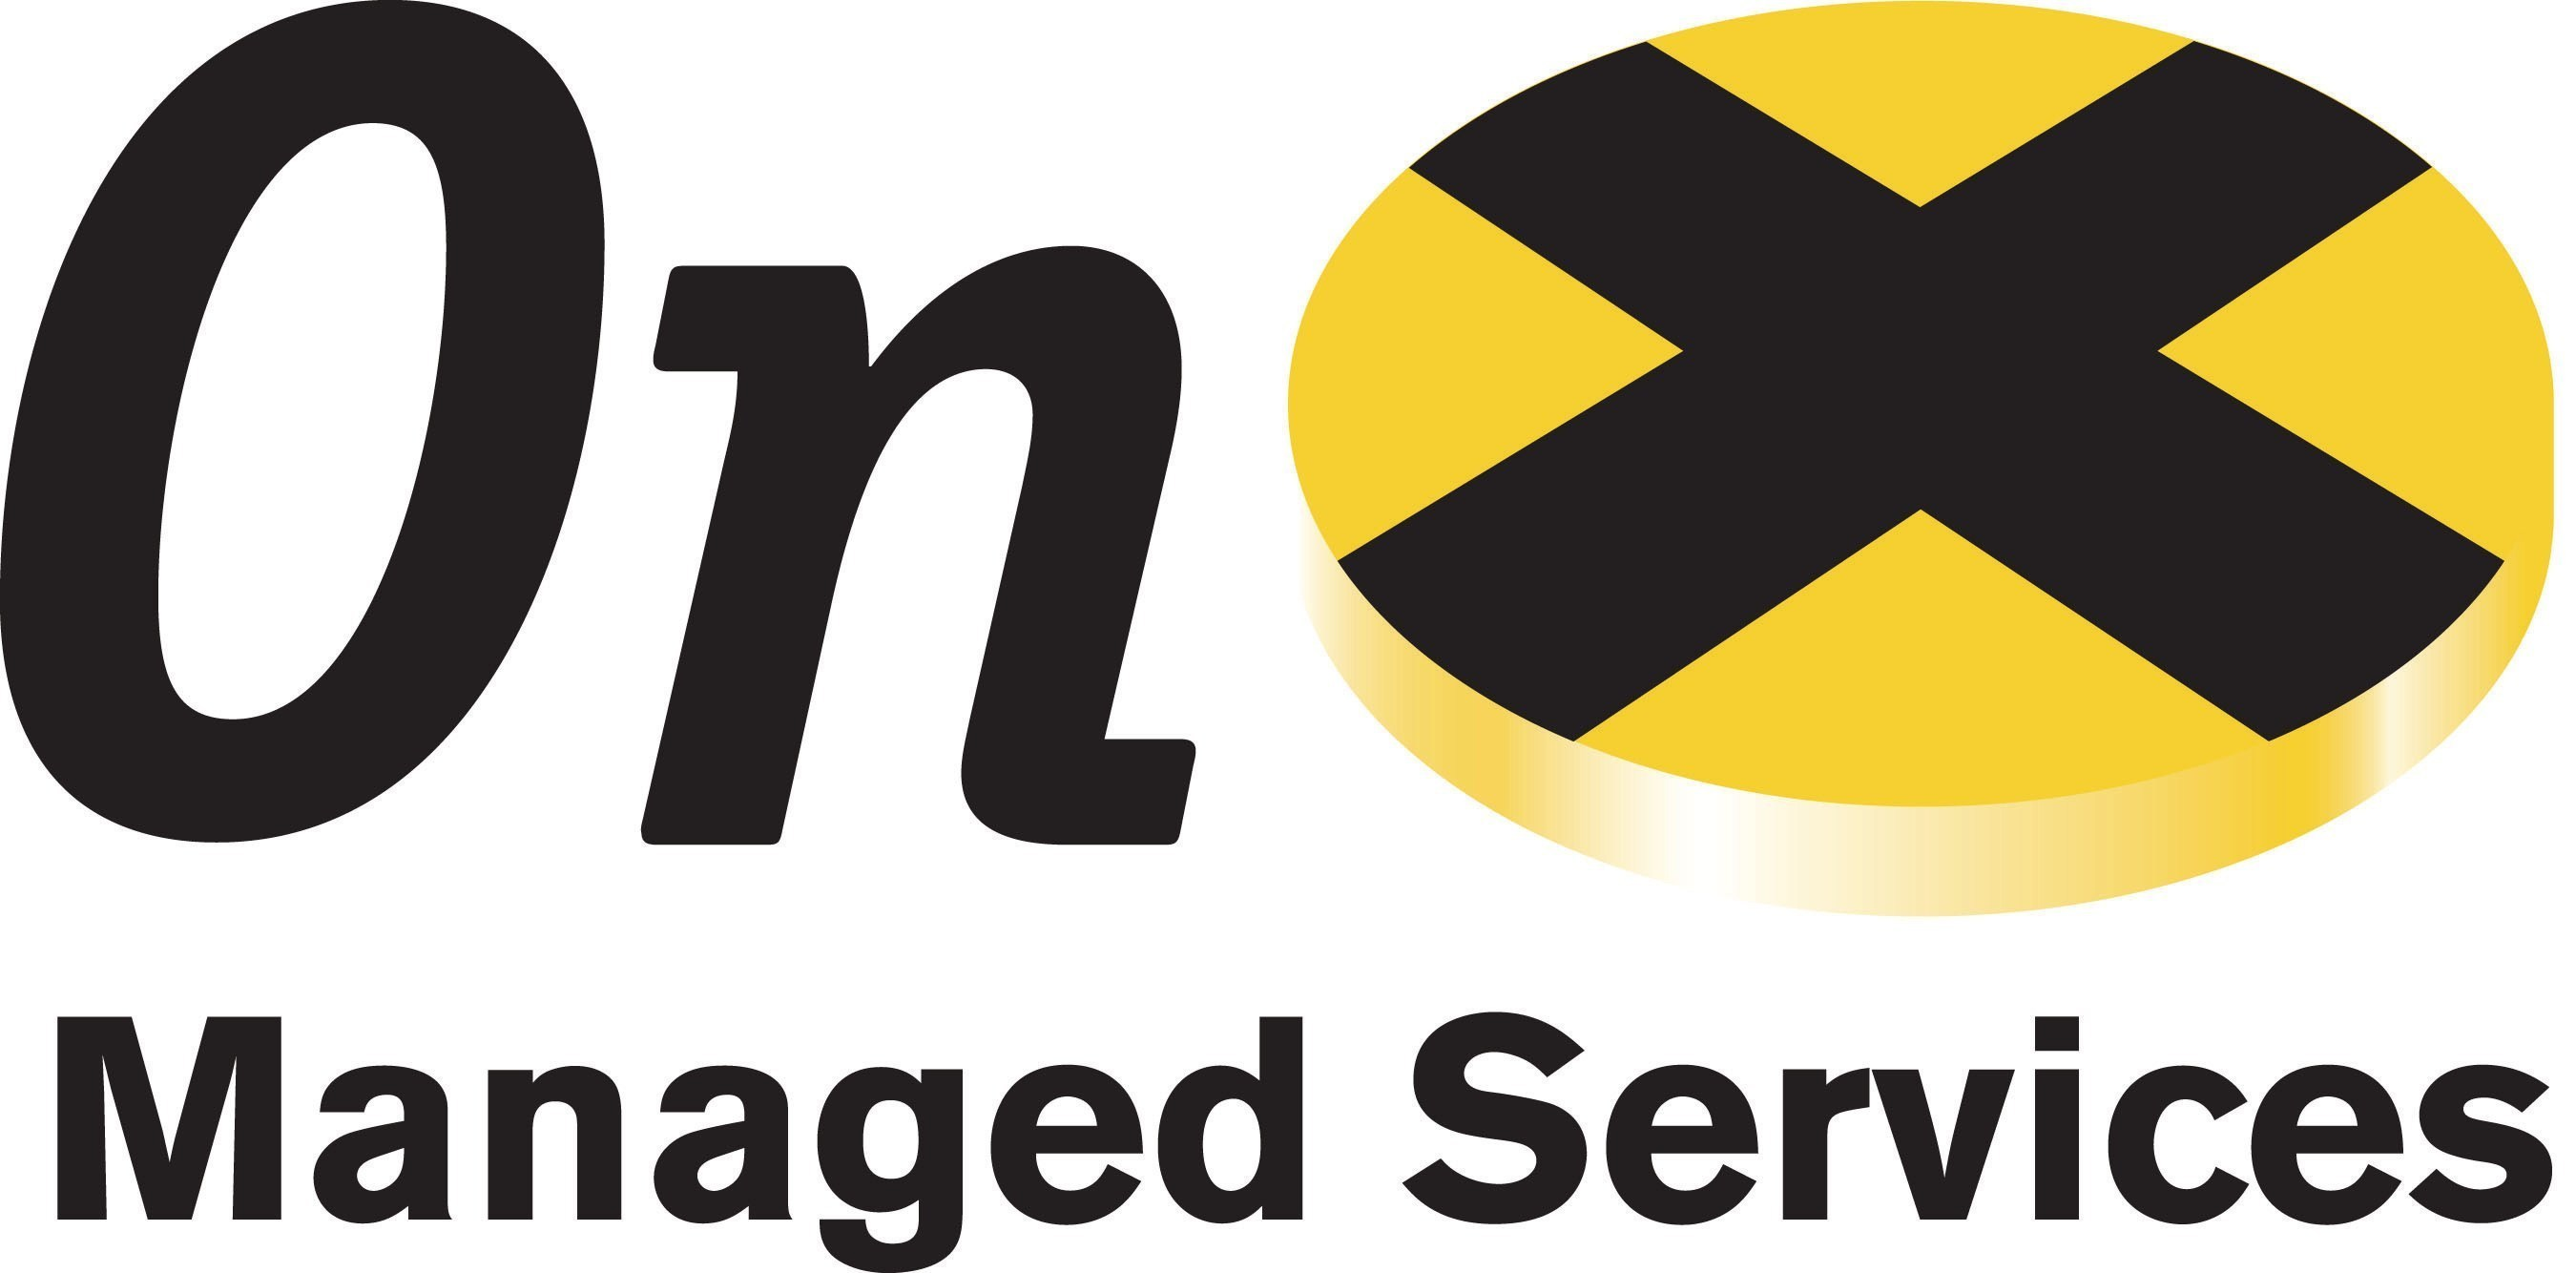 OnX Managed Services Launches IT Service Management Solutions for Service Desk Support and Service Management Software